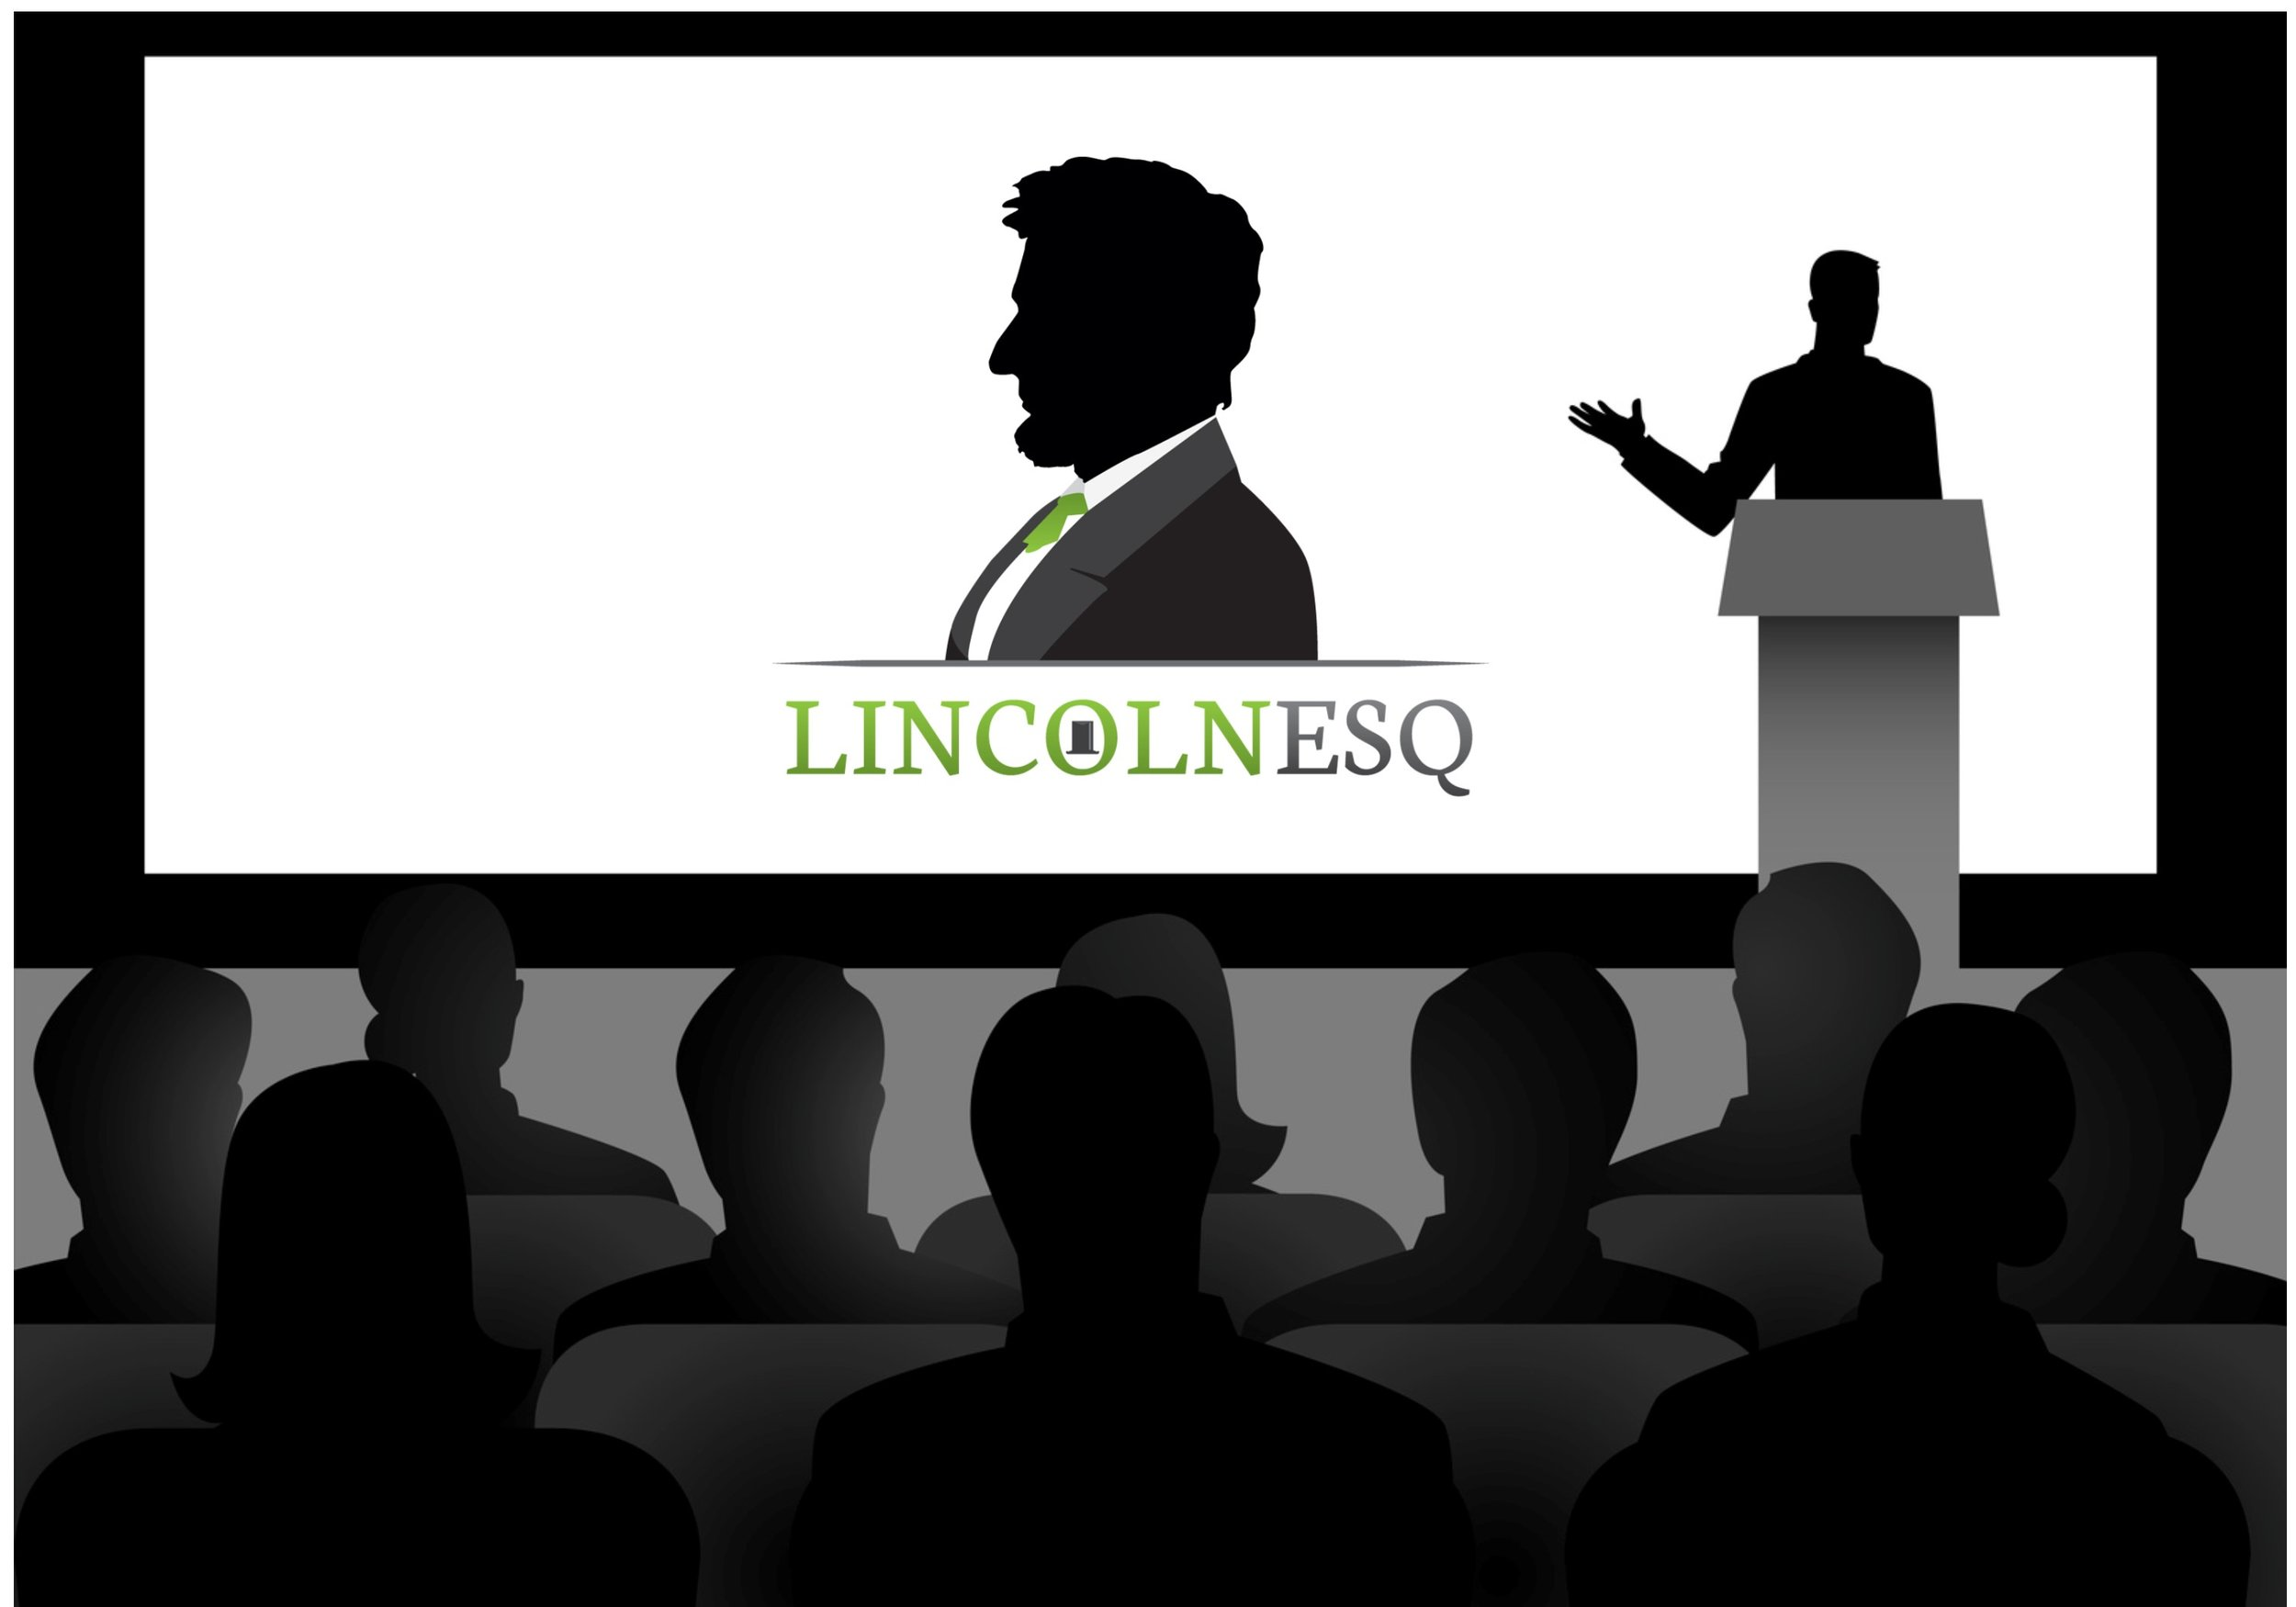 lincolnesq screen final no seriously.jpg